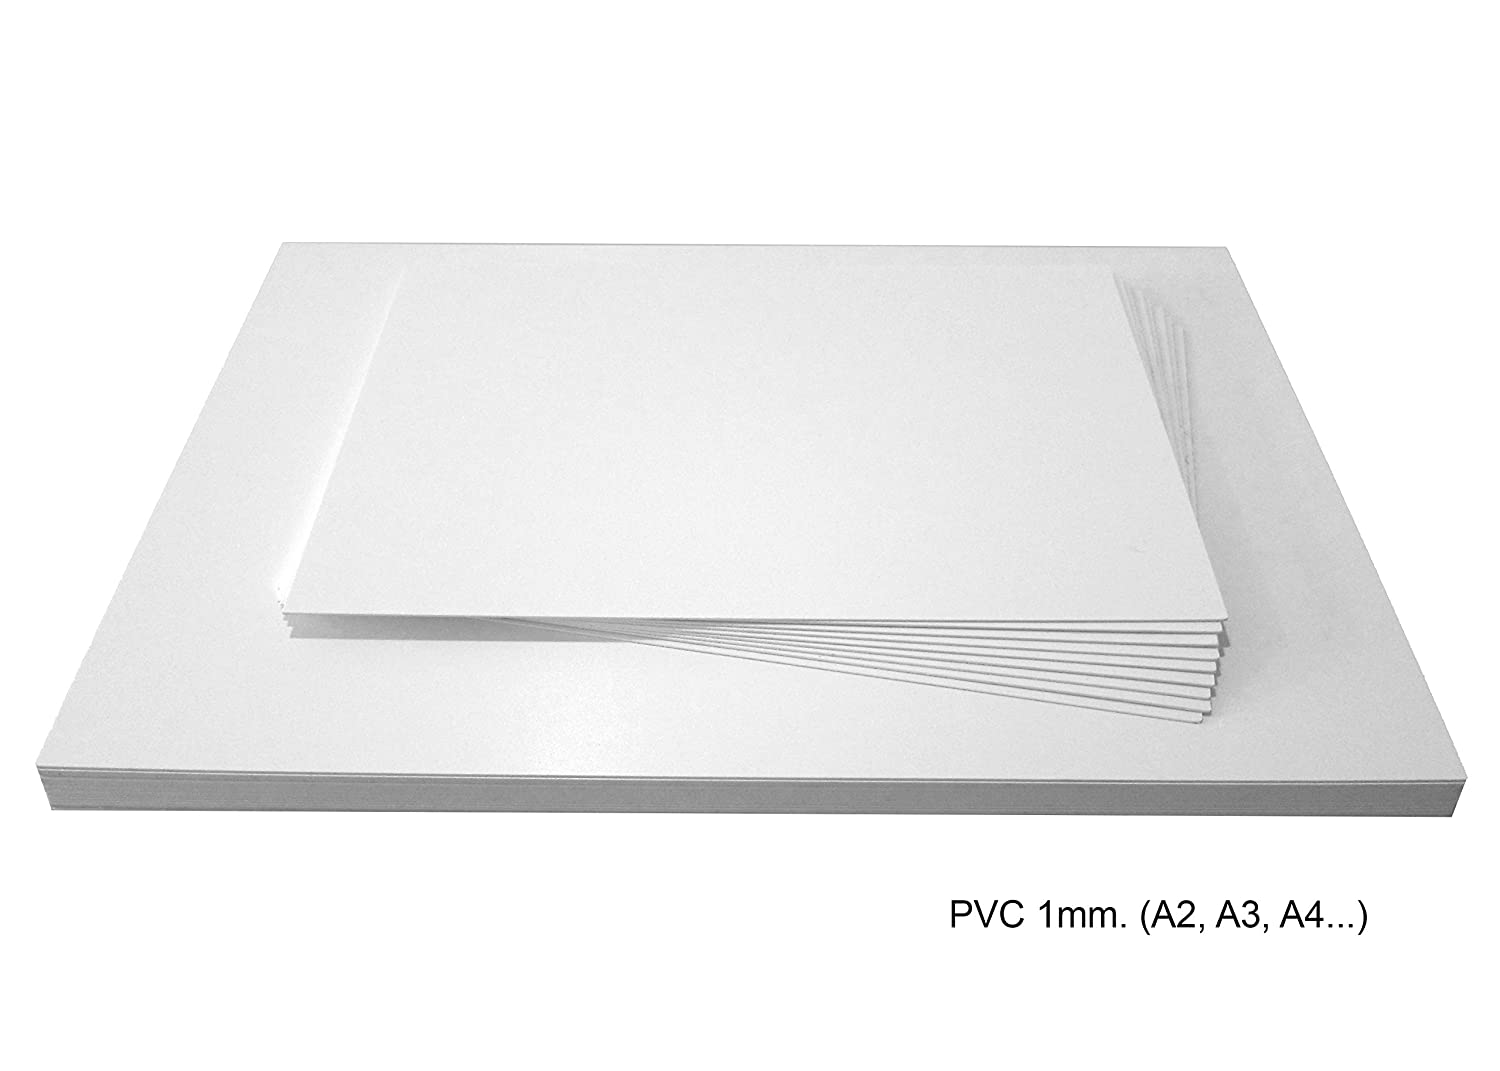 297x420mm FRM Professional Quality. A3 , Matt White, 10 Foam PVC Sheets Ideal for Digital and Screen Printing Plastic Sheets Made in Germany